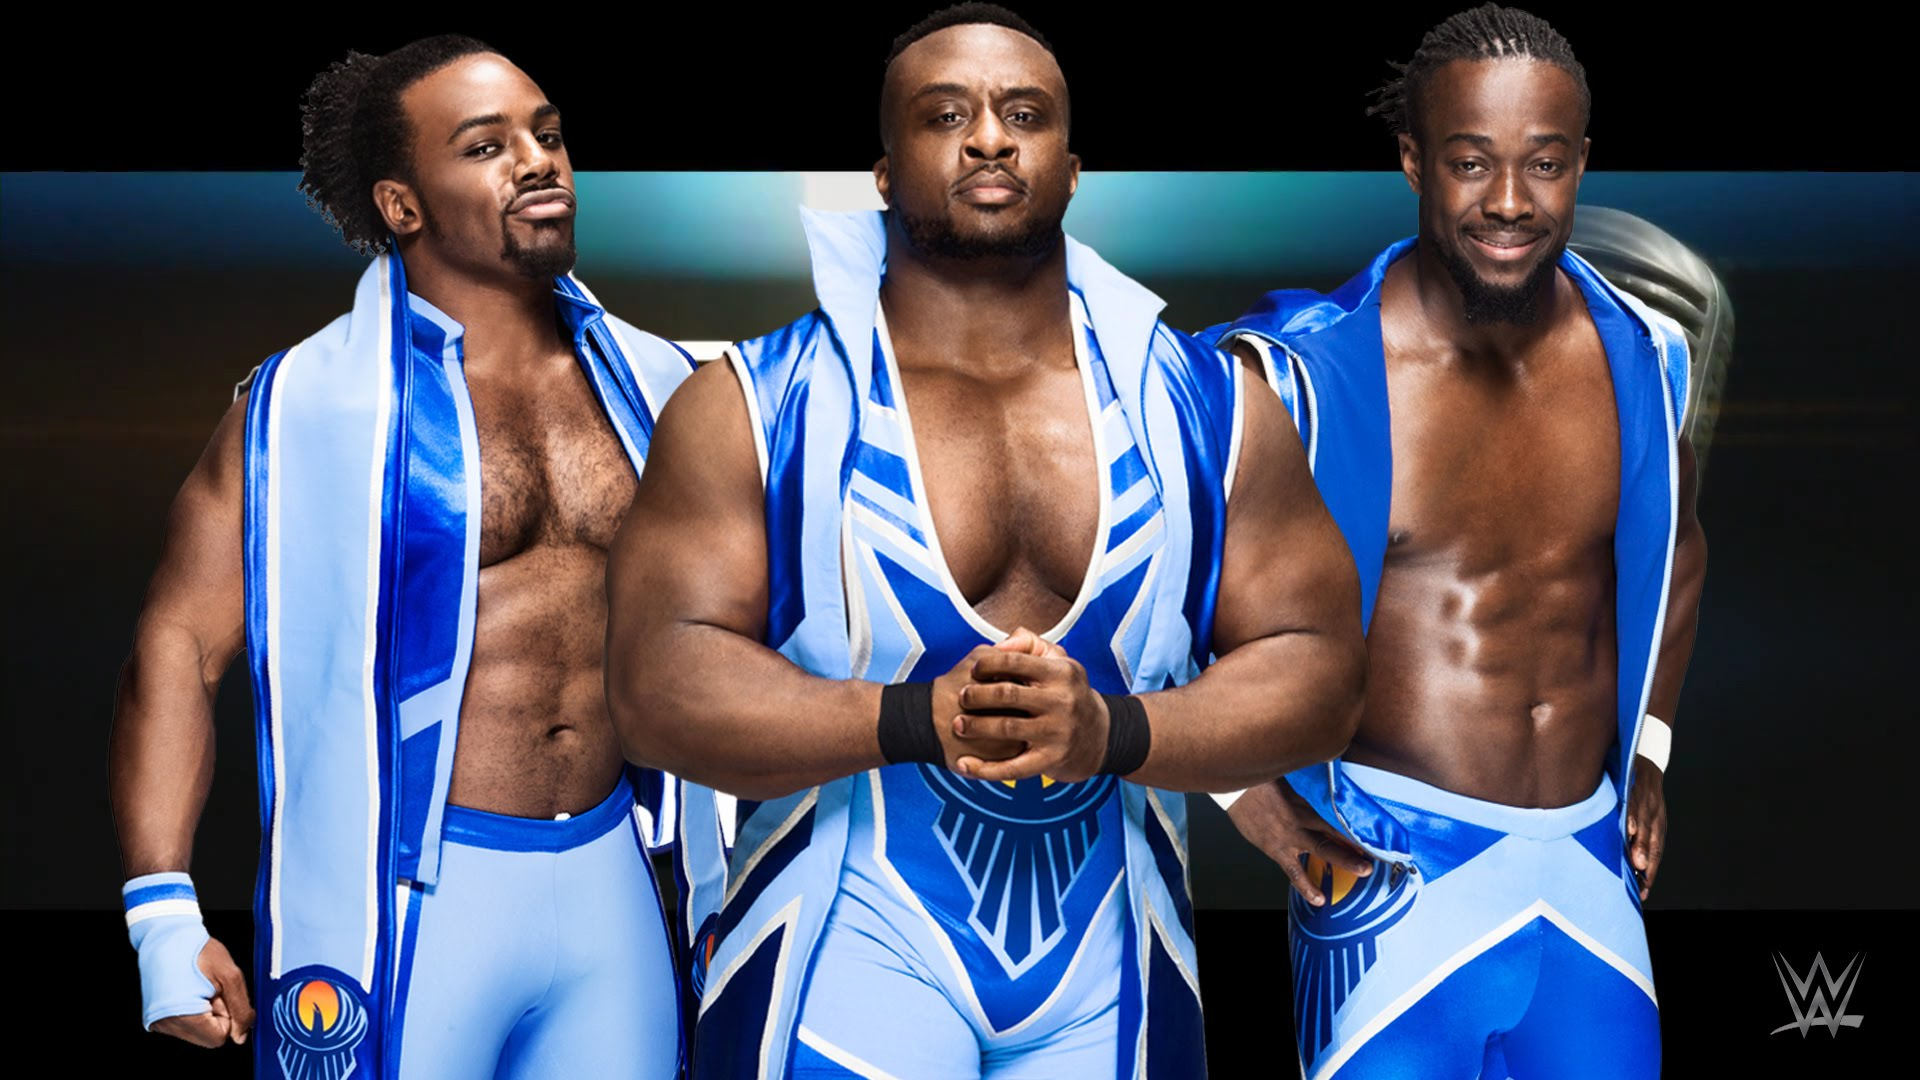 The New Day.jpg